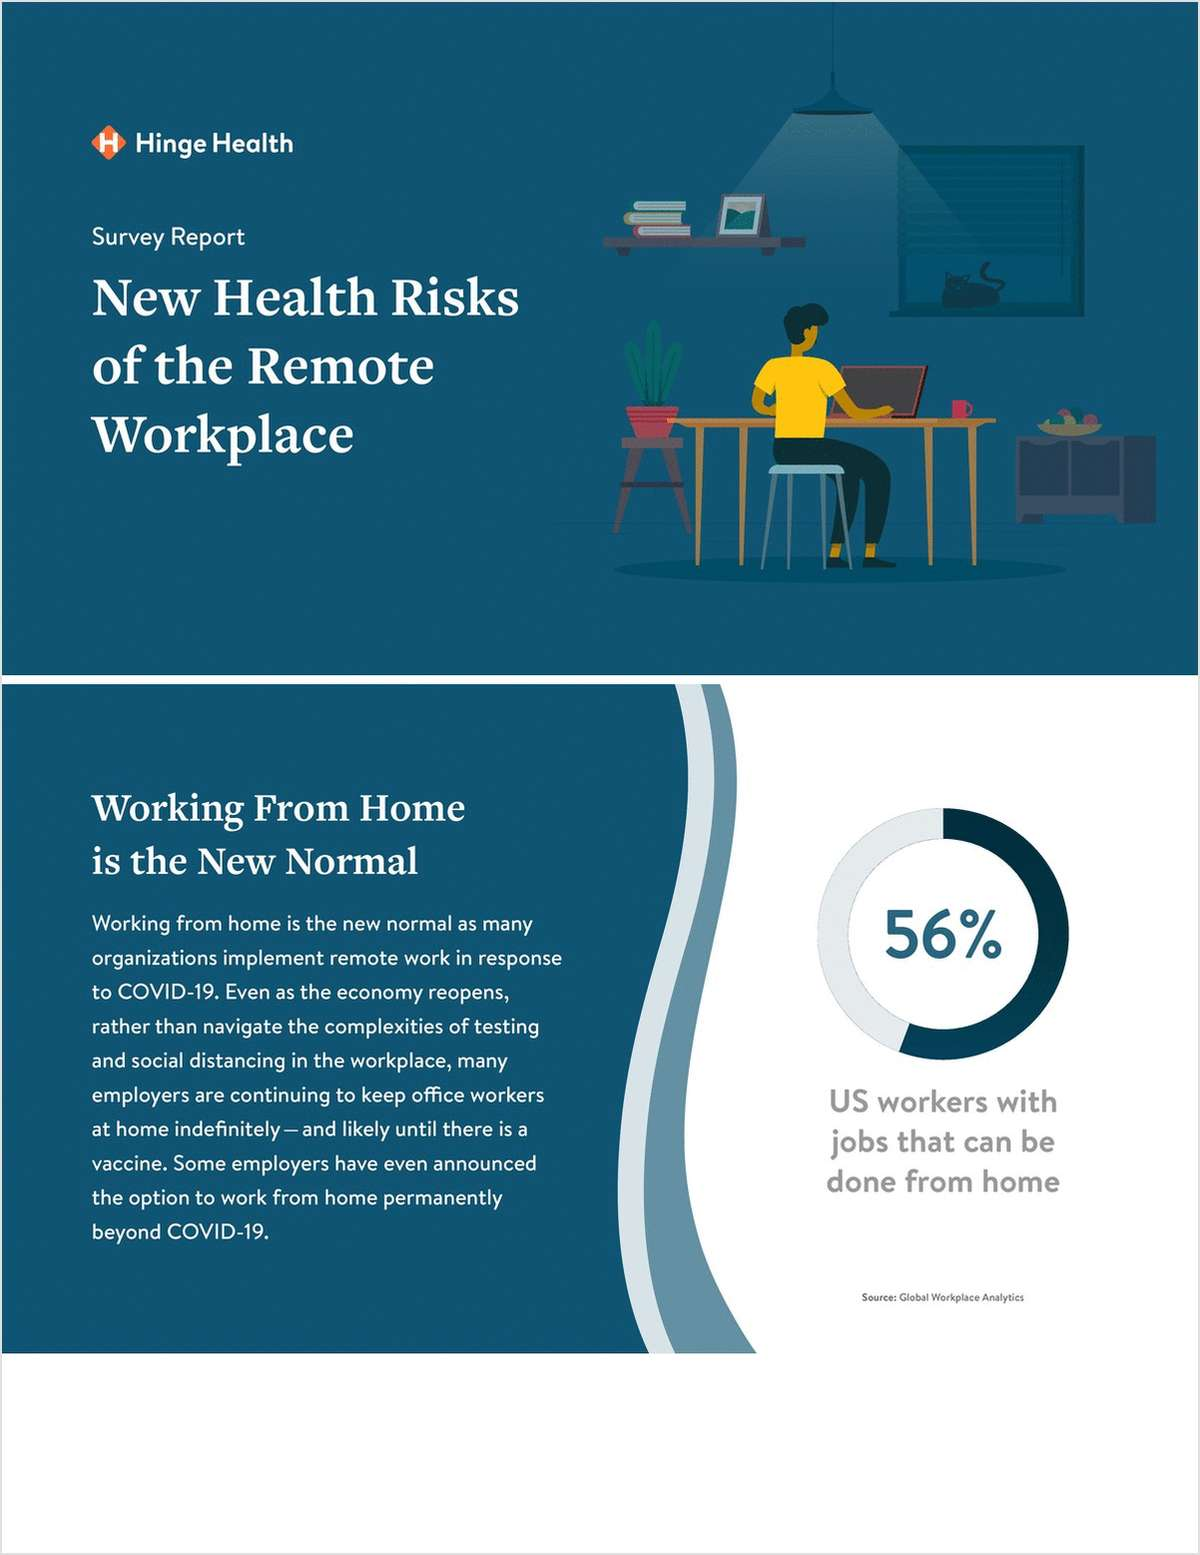 Survey Report: Help Clients Tackle the New Health Risks of the Remote Workplace